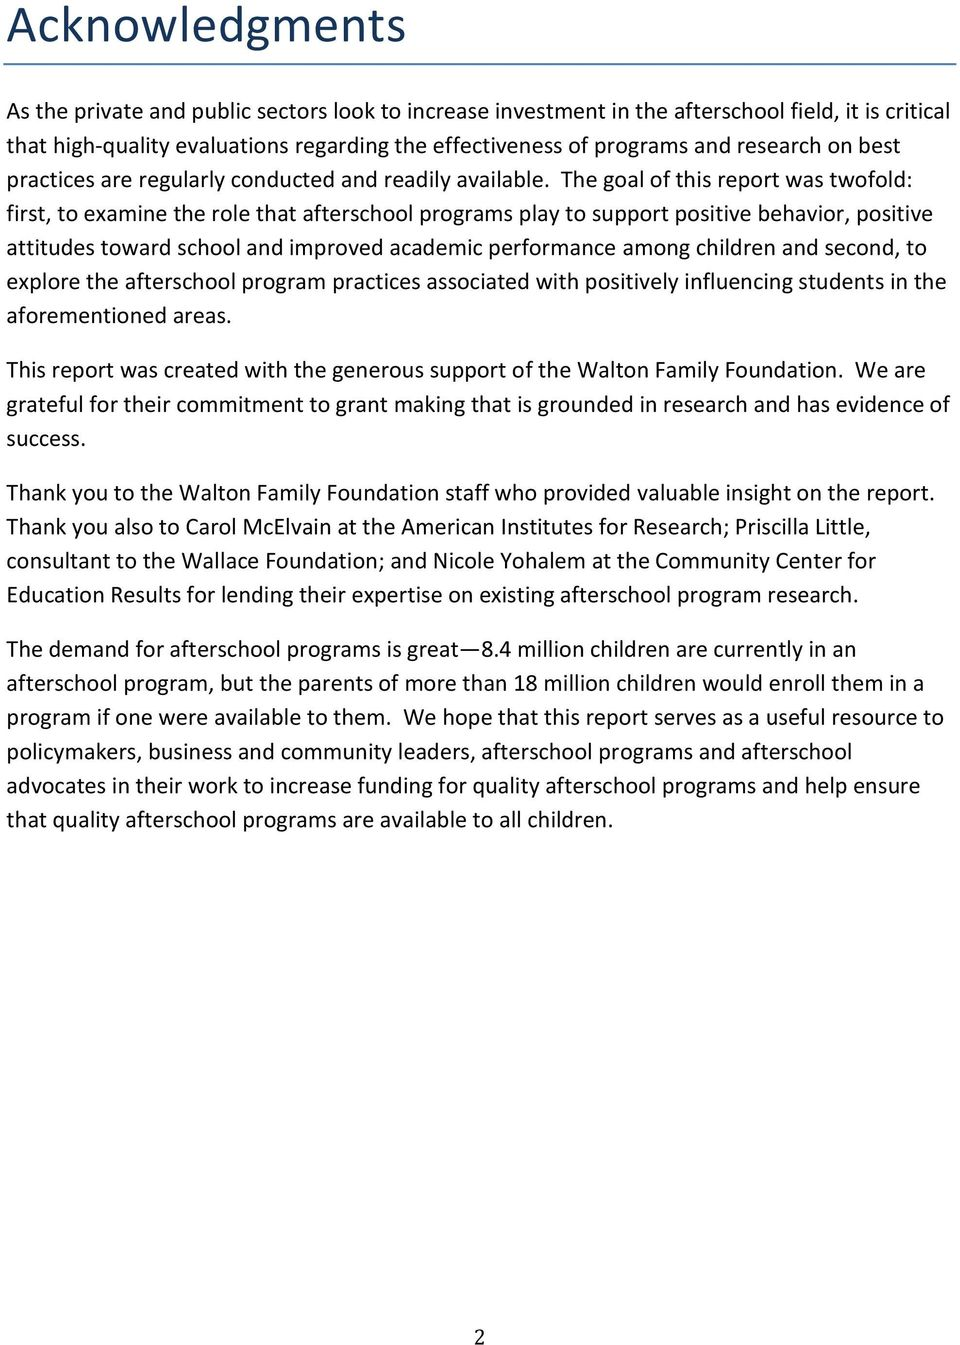 The goal of this report was twofold: first, to examine the role that afterschool programs play to support positive behavior, positive attitudes toward school and improved academic performance among